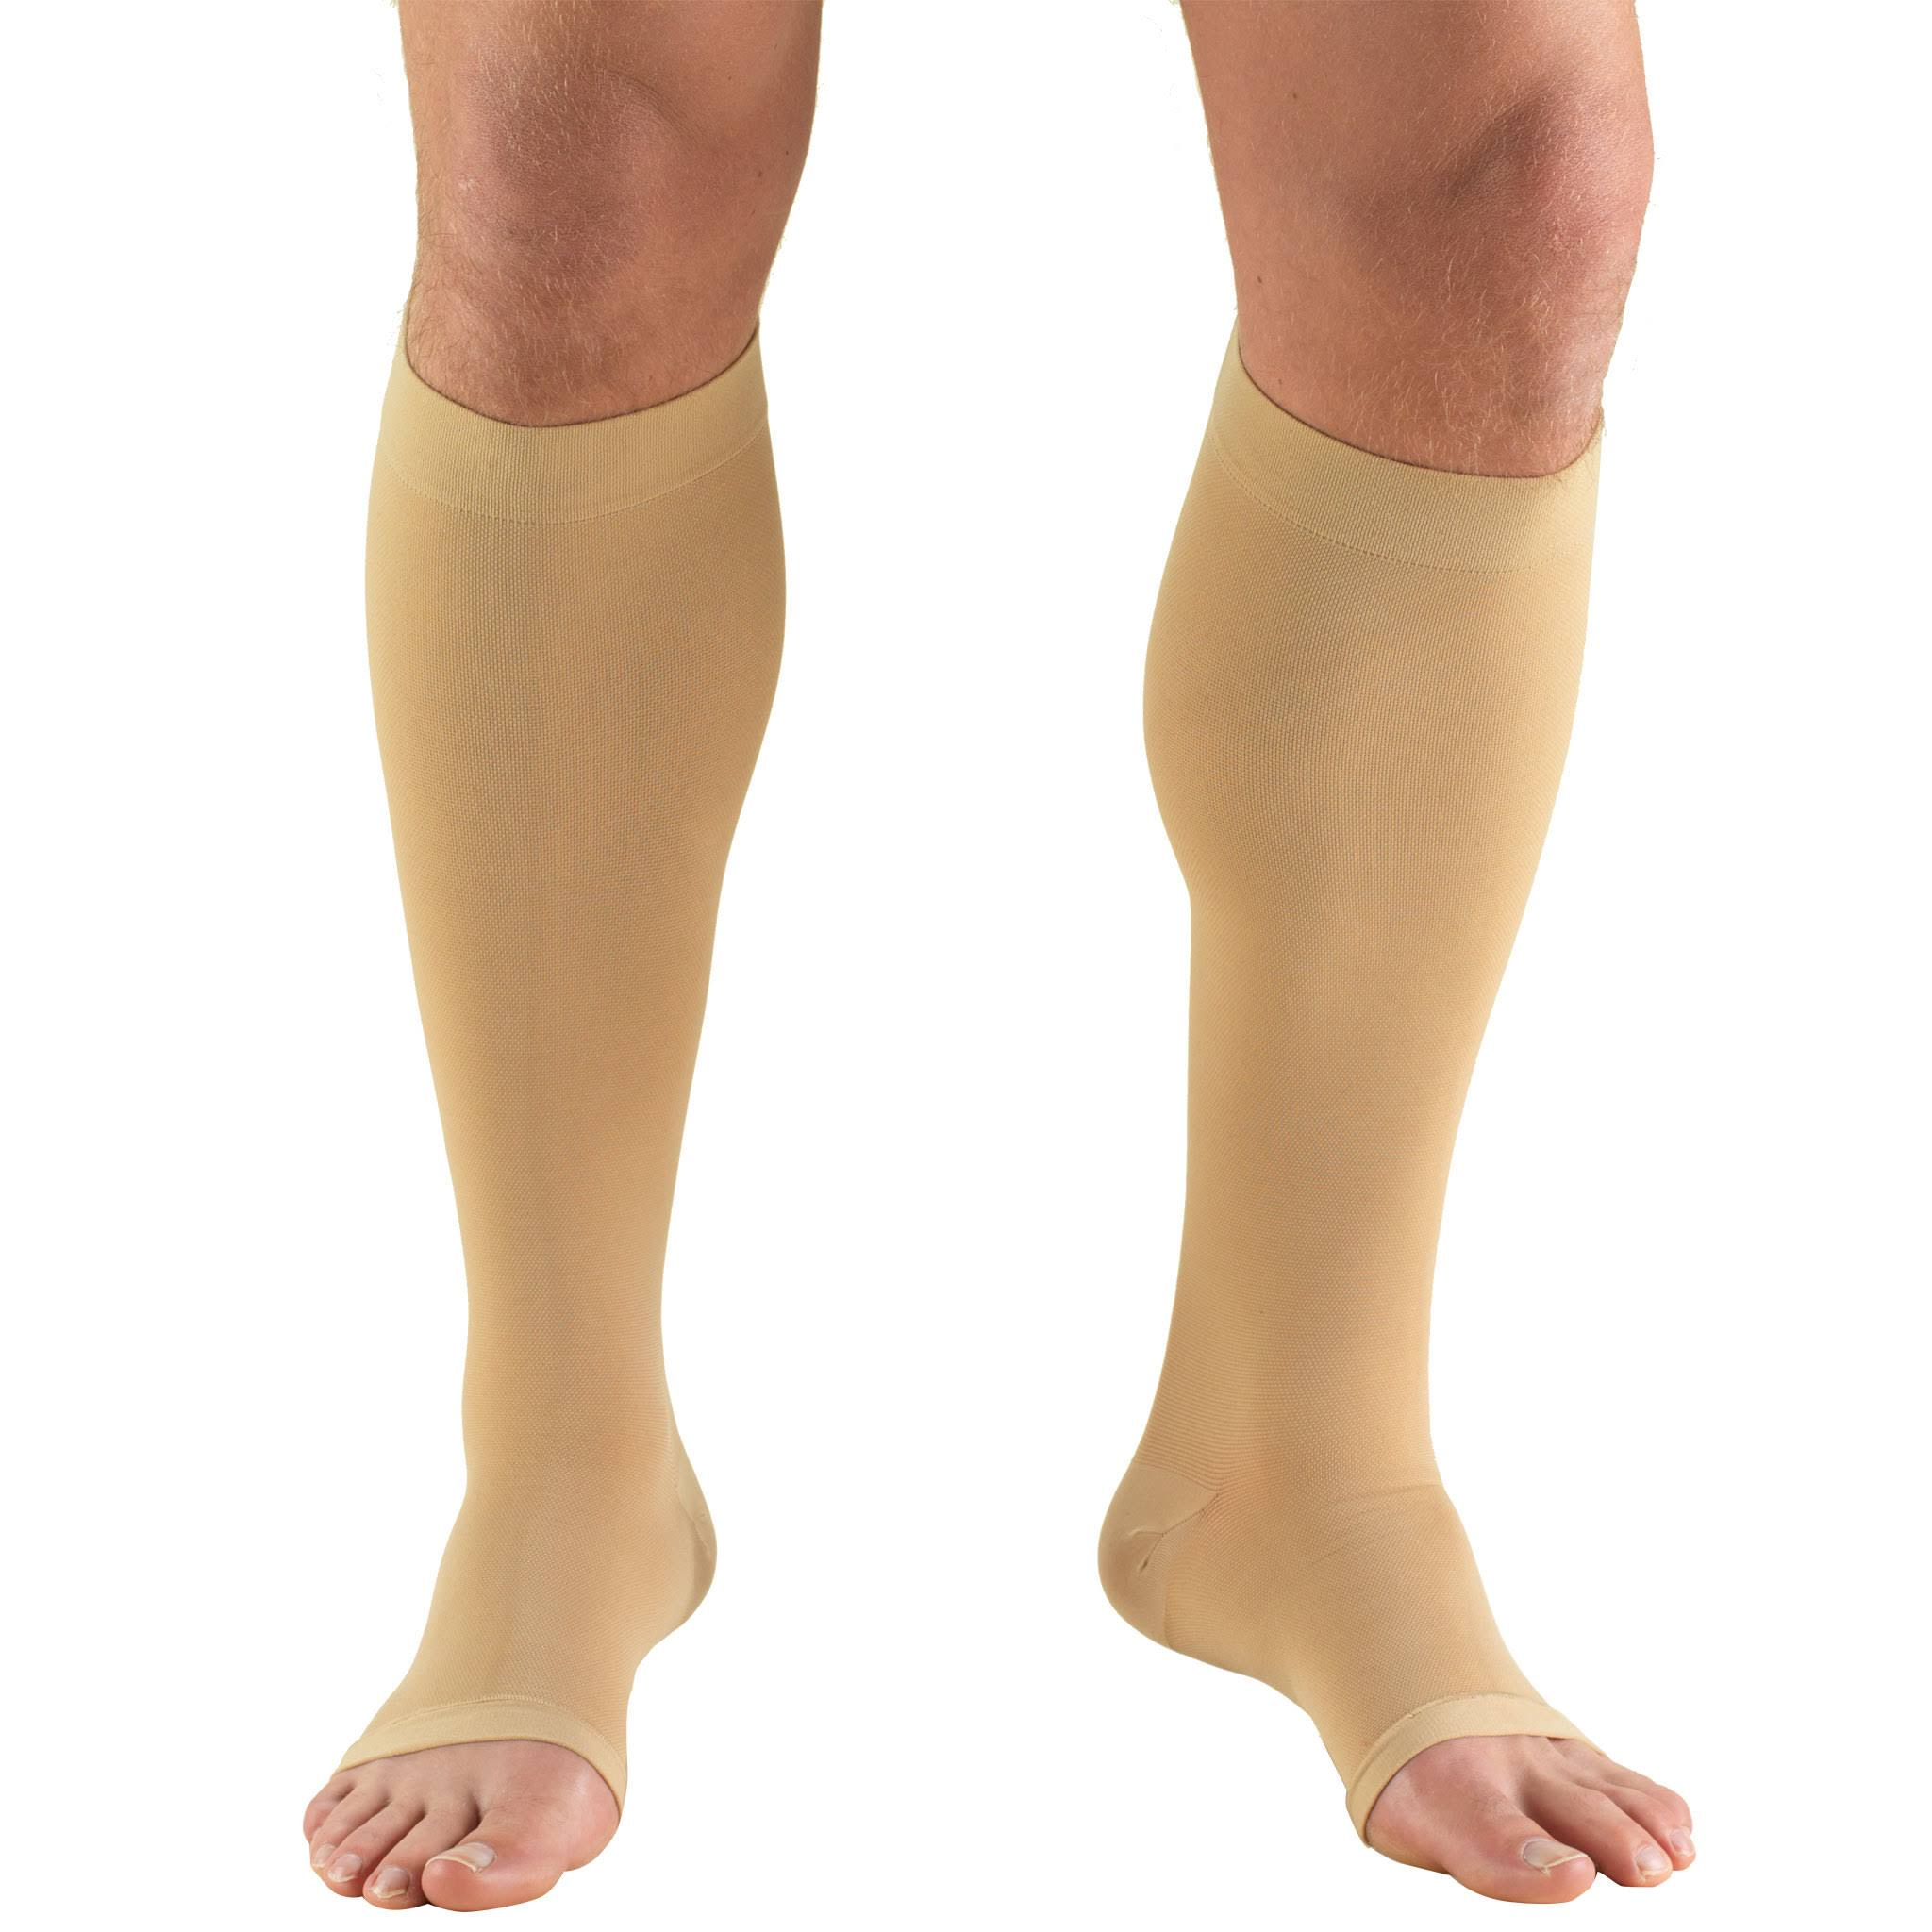 Truform 0865 Open Toe Knee High Compression Stockings - Beige, Large